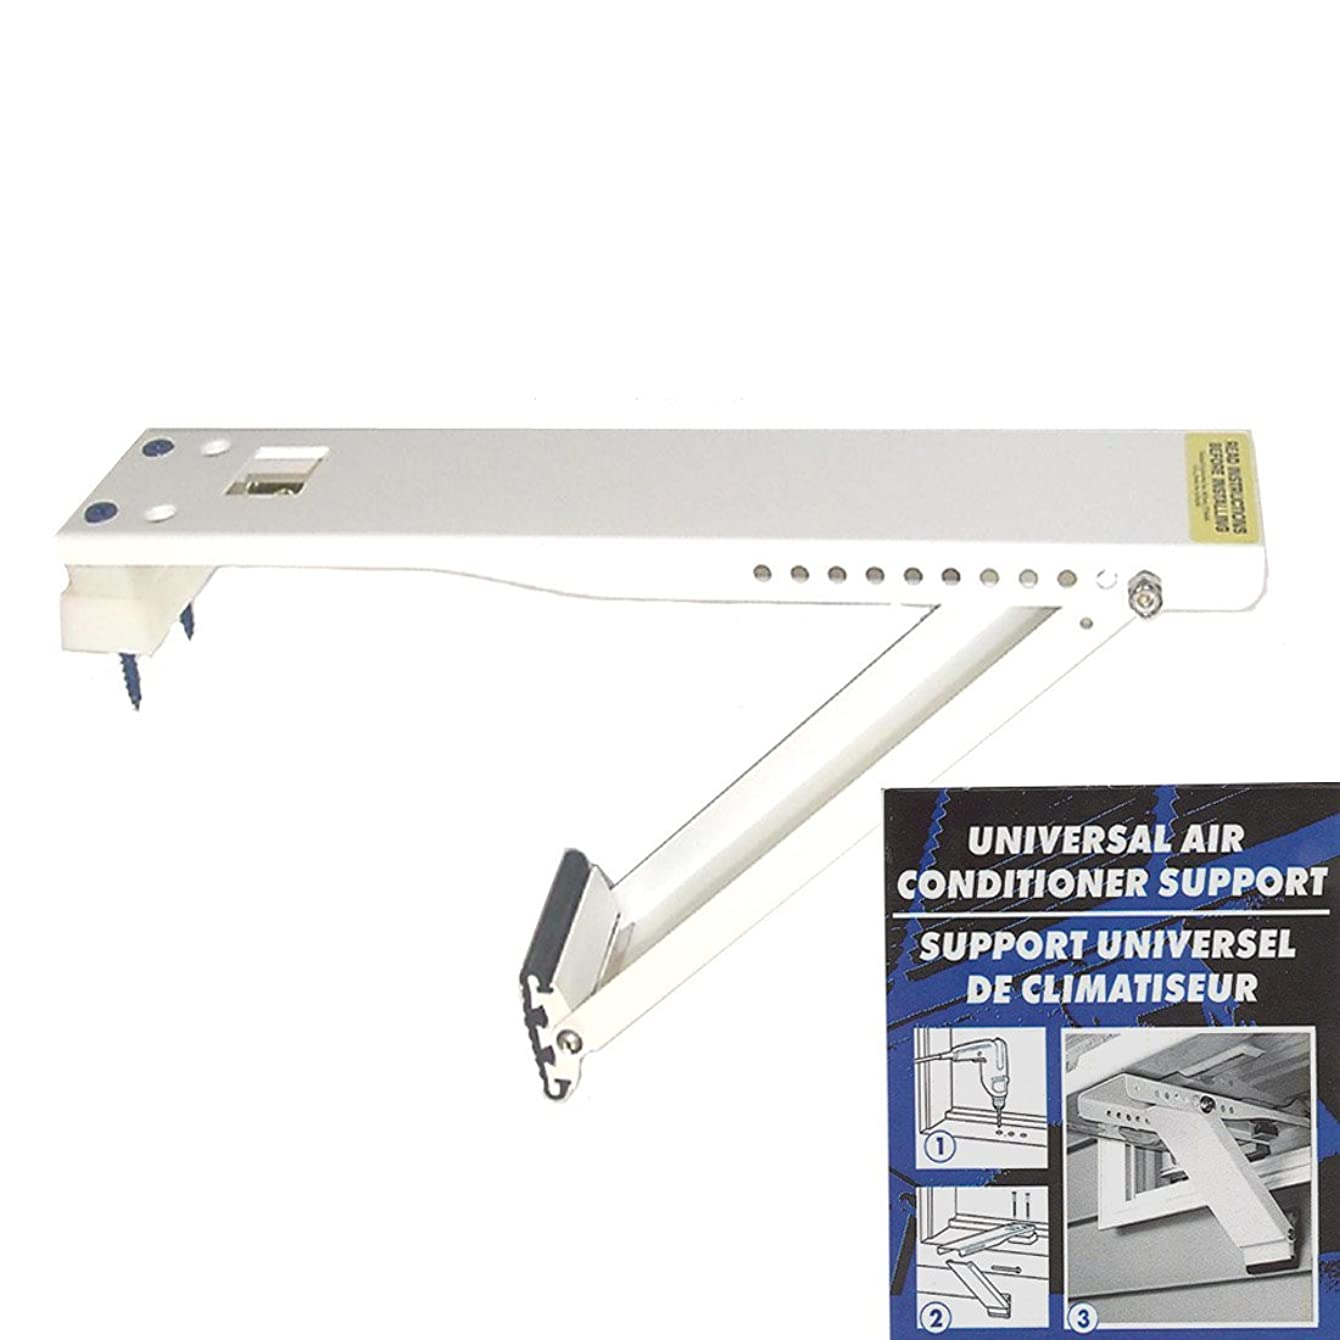 AC Safe AC-080 Universal Light-Duty Air Conditioner Support Bracket, Upto 80 Pounds (Certified Refurbished)